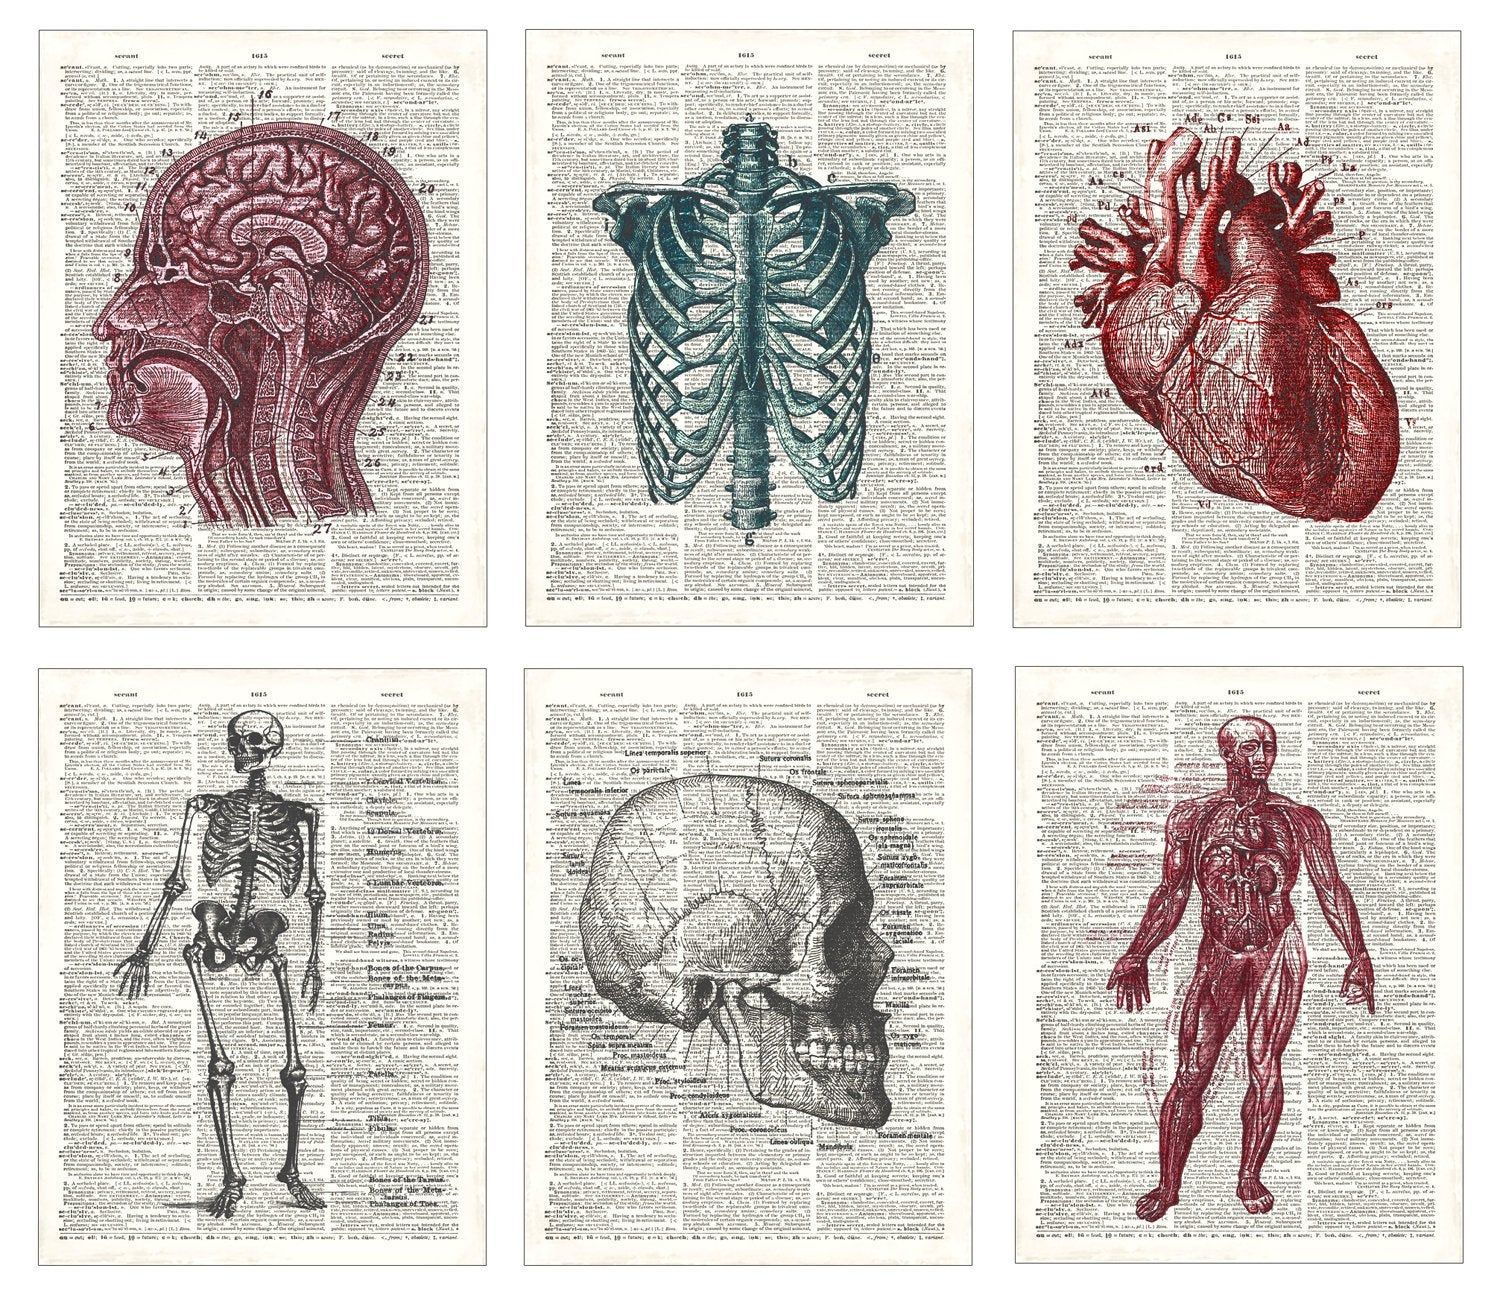 Anatomy Dictionary Prints, medical diagram art prints, Doctor gift, Anatomy drawings home decor, doctors office decor, Buy 4 gt 2 free!